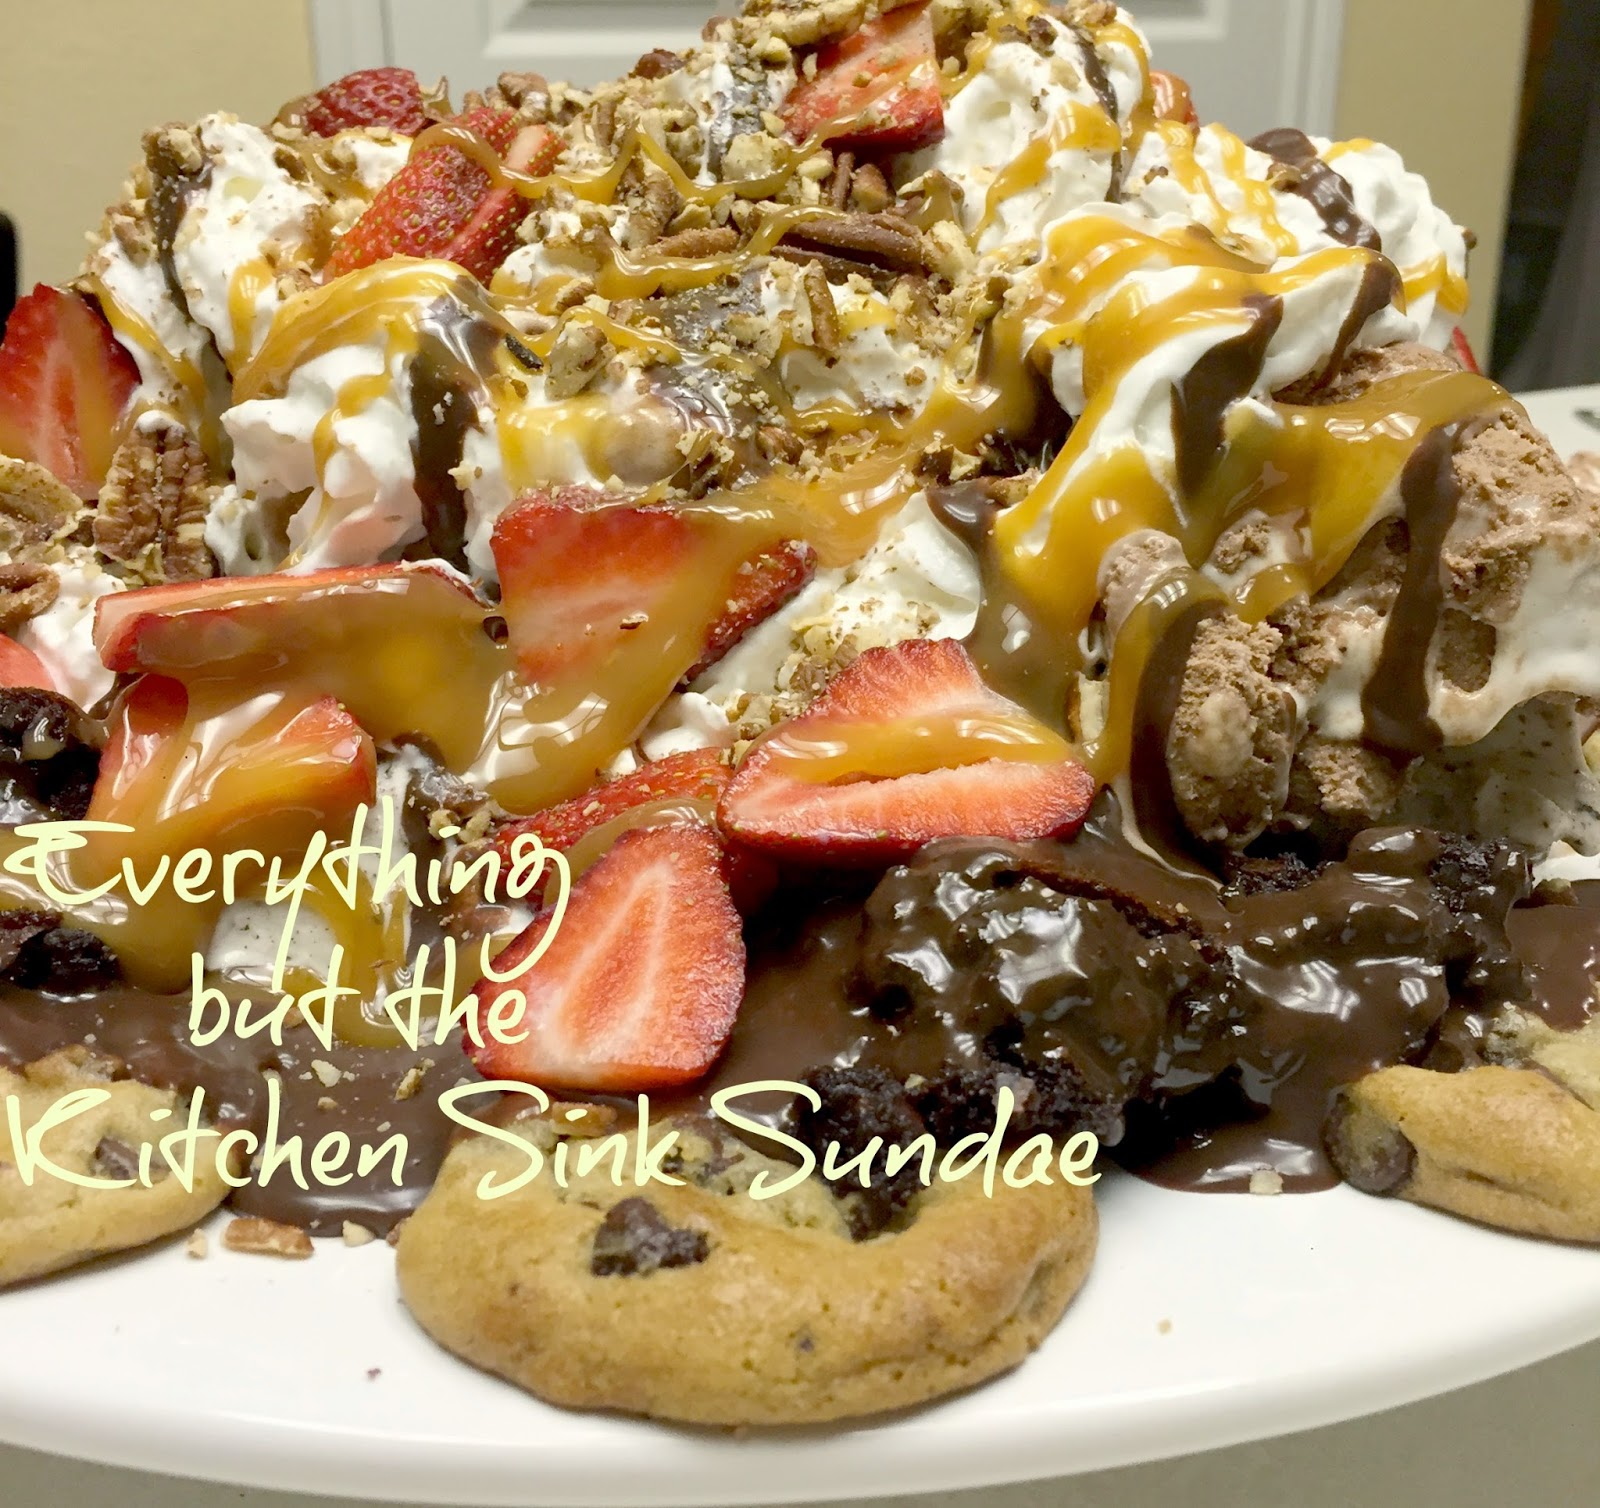 Everything But The Kitchen Sink Sundae - Purple Chocolat Home